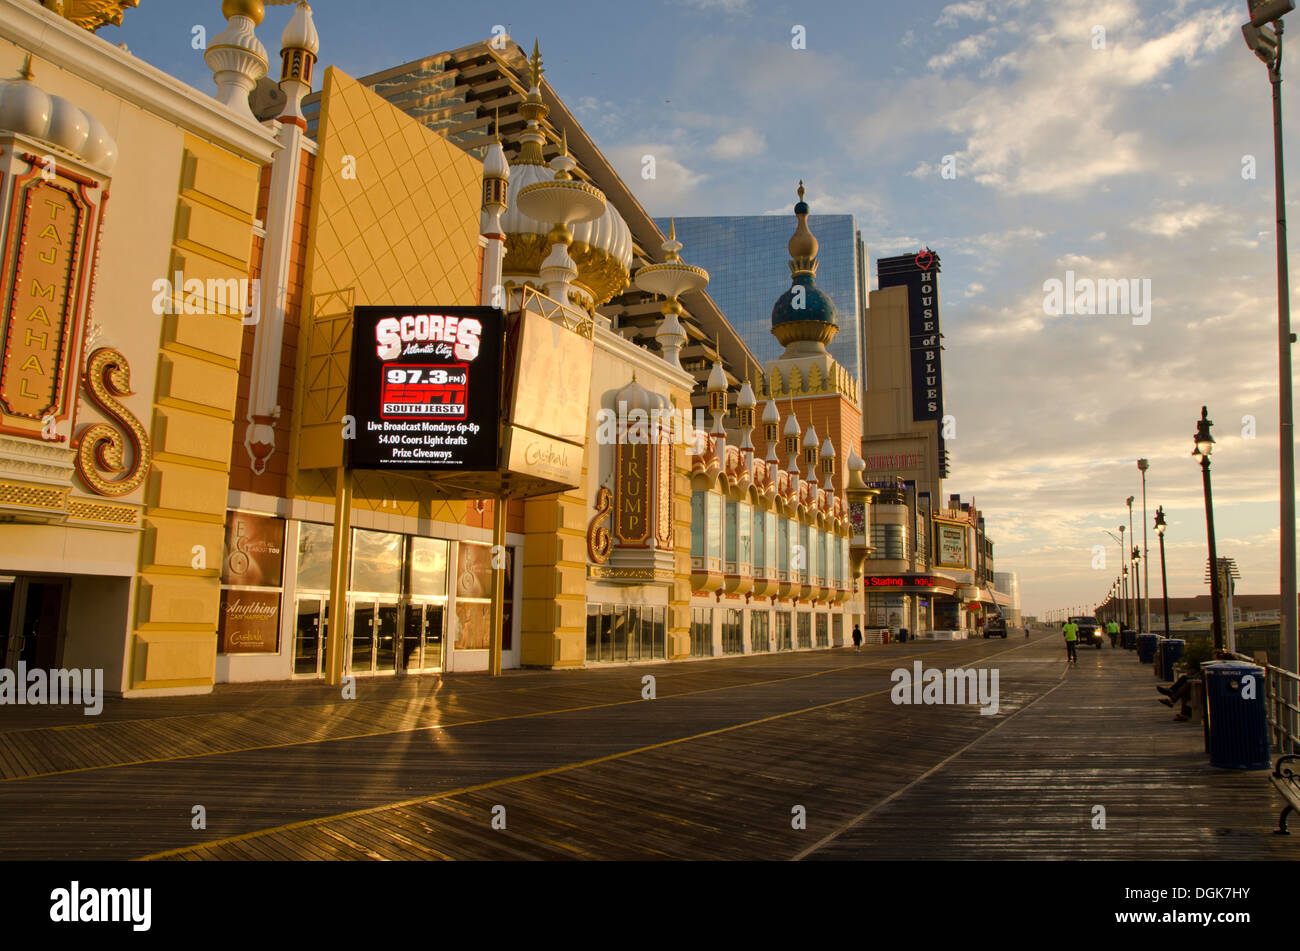 Atlantic city casinos legal gambling age what is responsible service of gambling